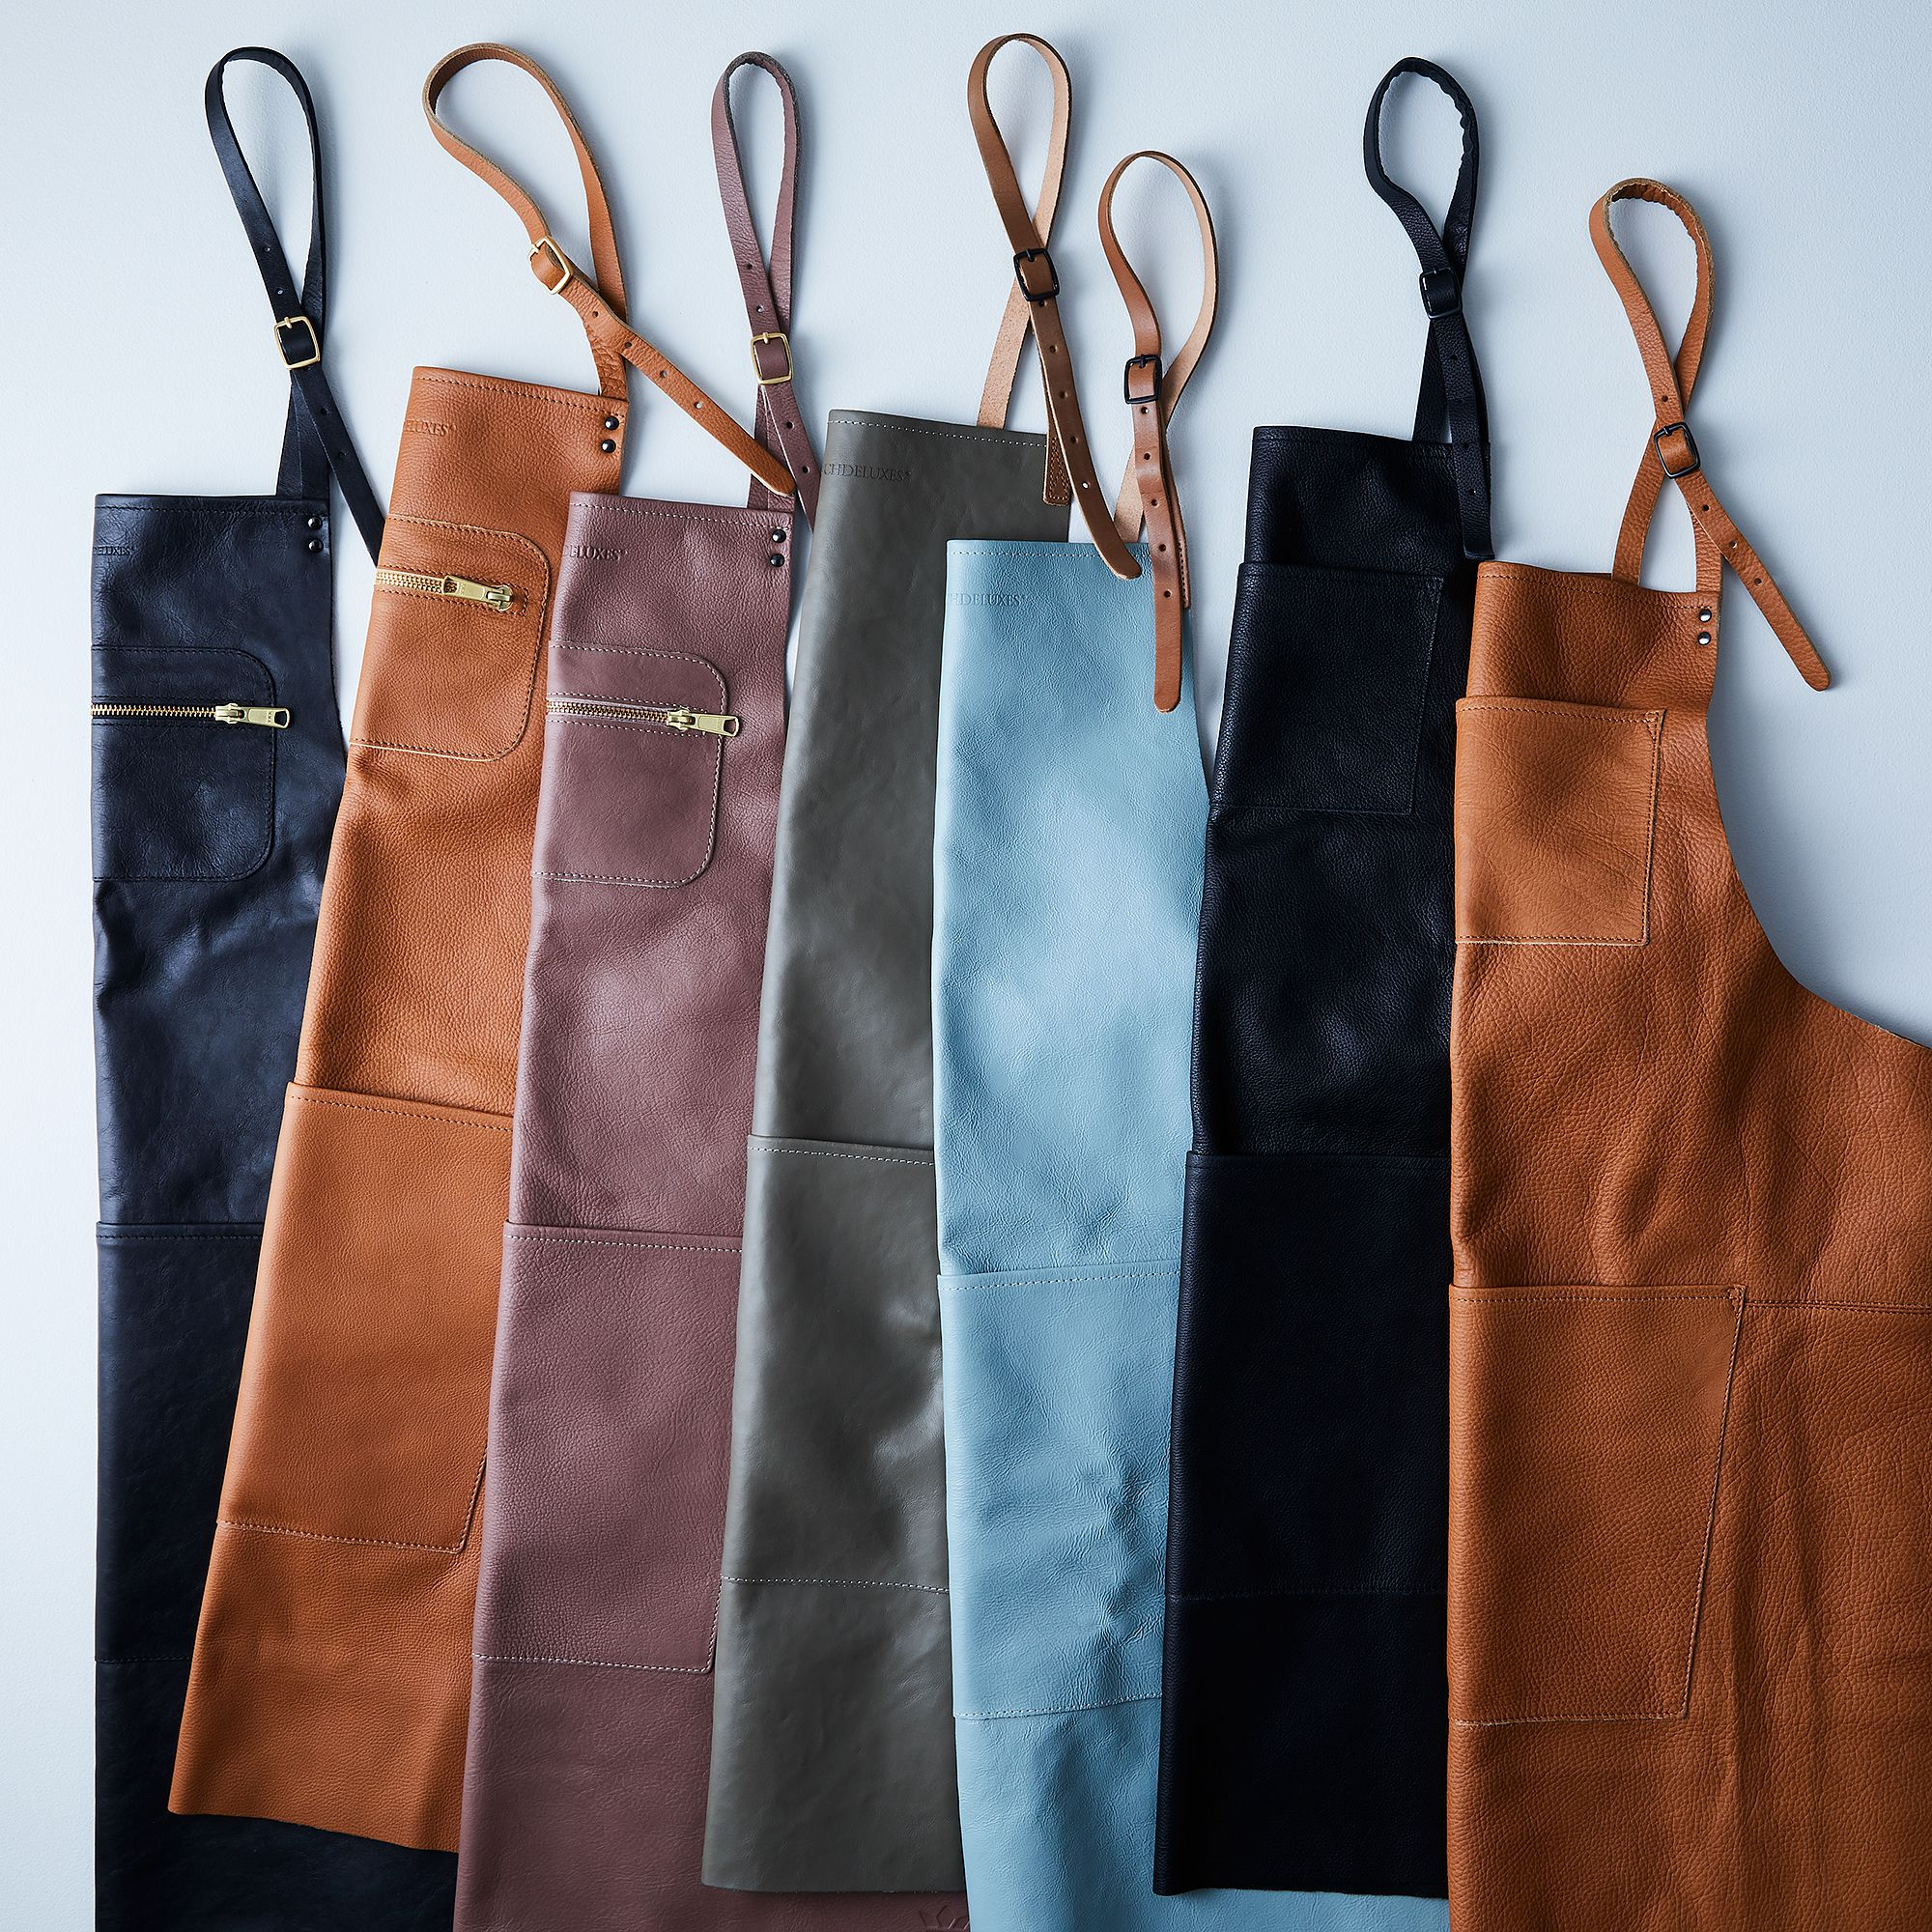 Splurge gifts for foodies who like to cook and eat it all: Dutch leather aprons at Food52 | Cool Mom Eats holiday gift guide 2017